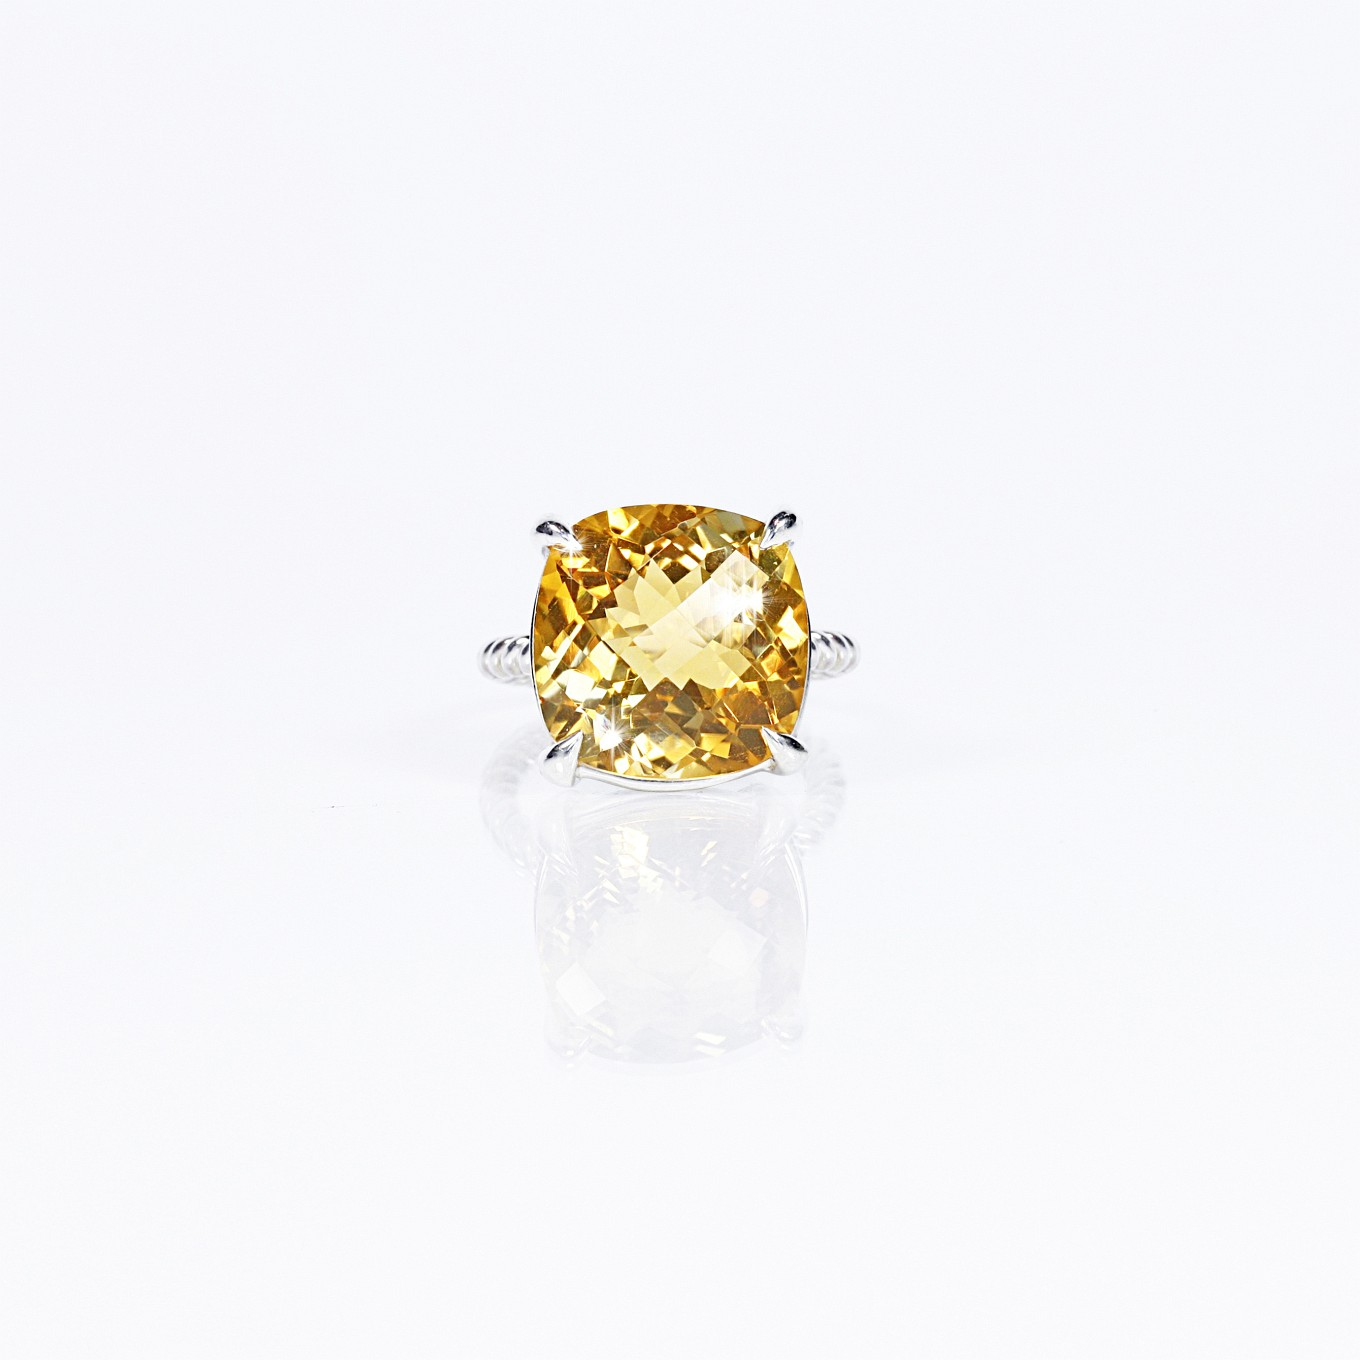 CITRINE CHEQUERBOARD BRAID RING IN STERLING SILVER